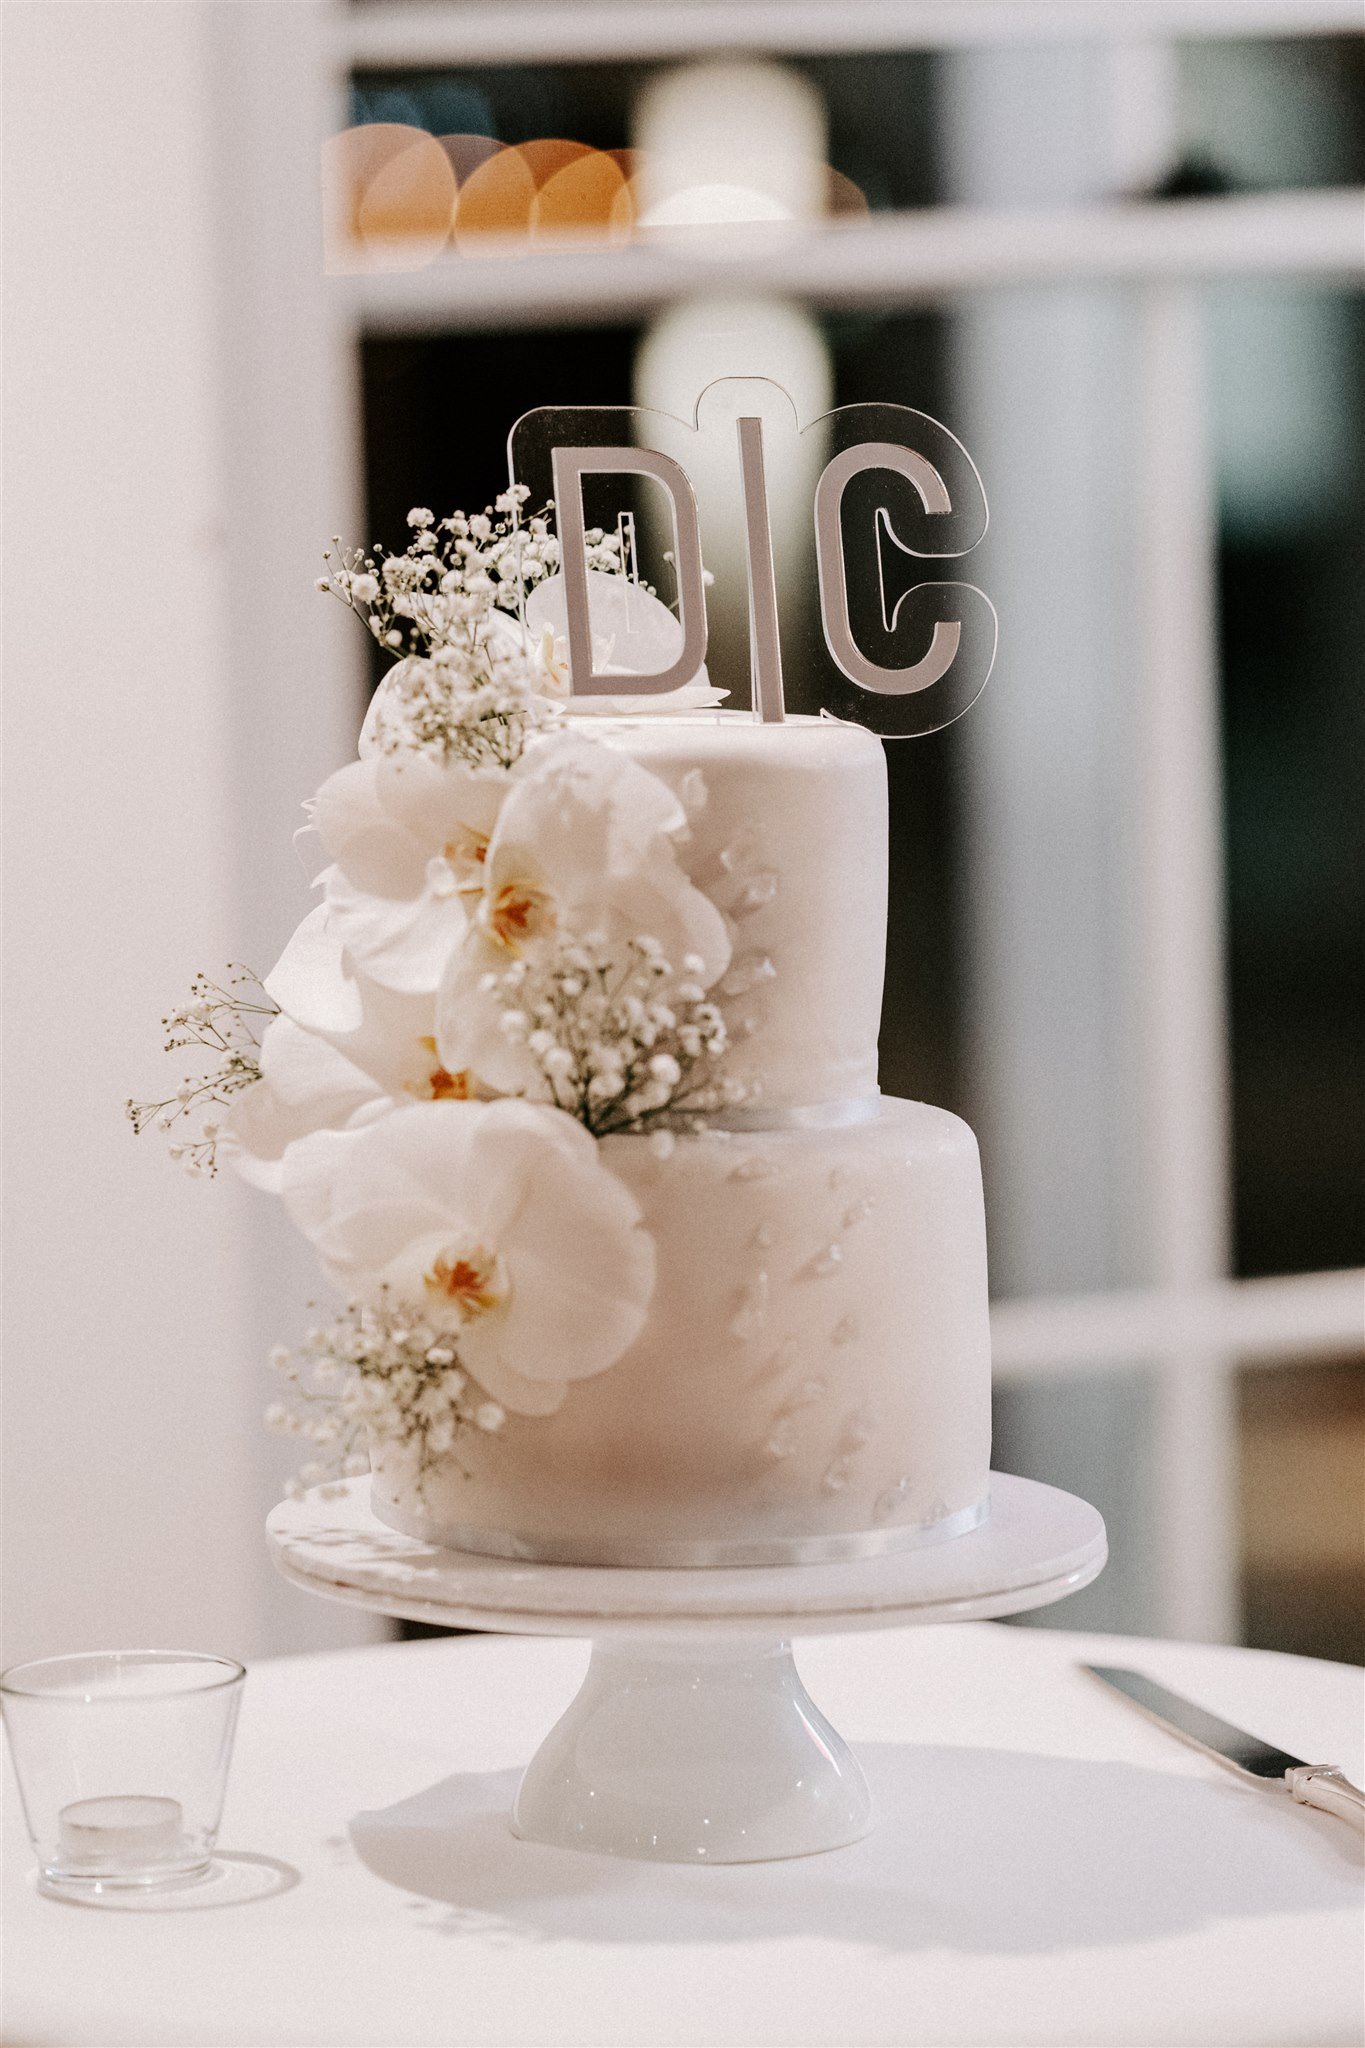 Wedding cake featuring orchids and baby's breath